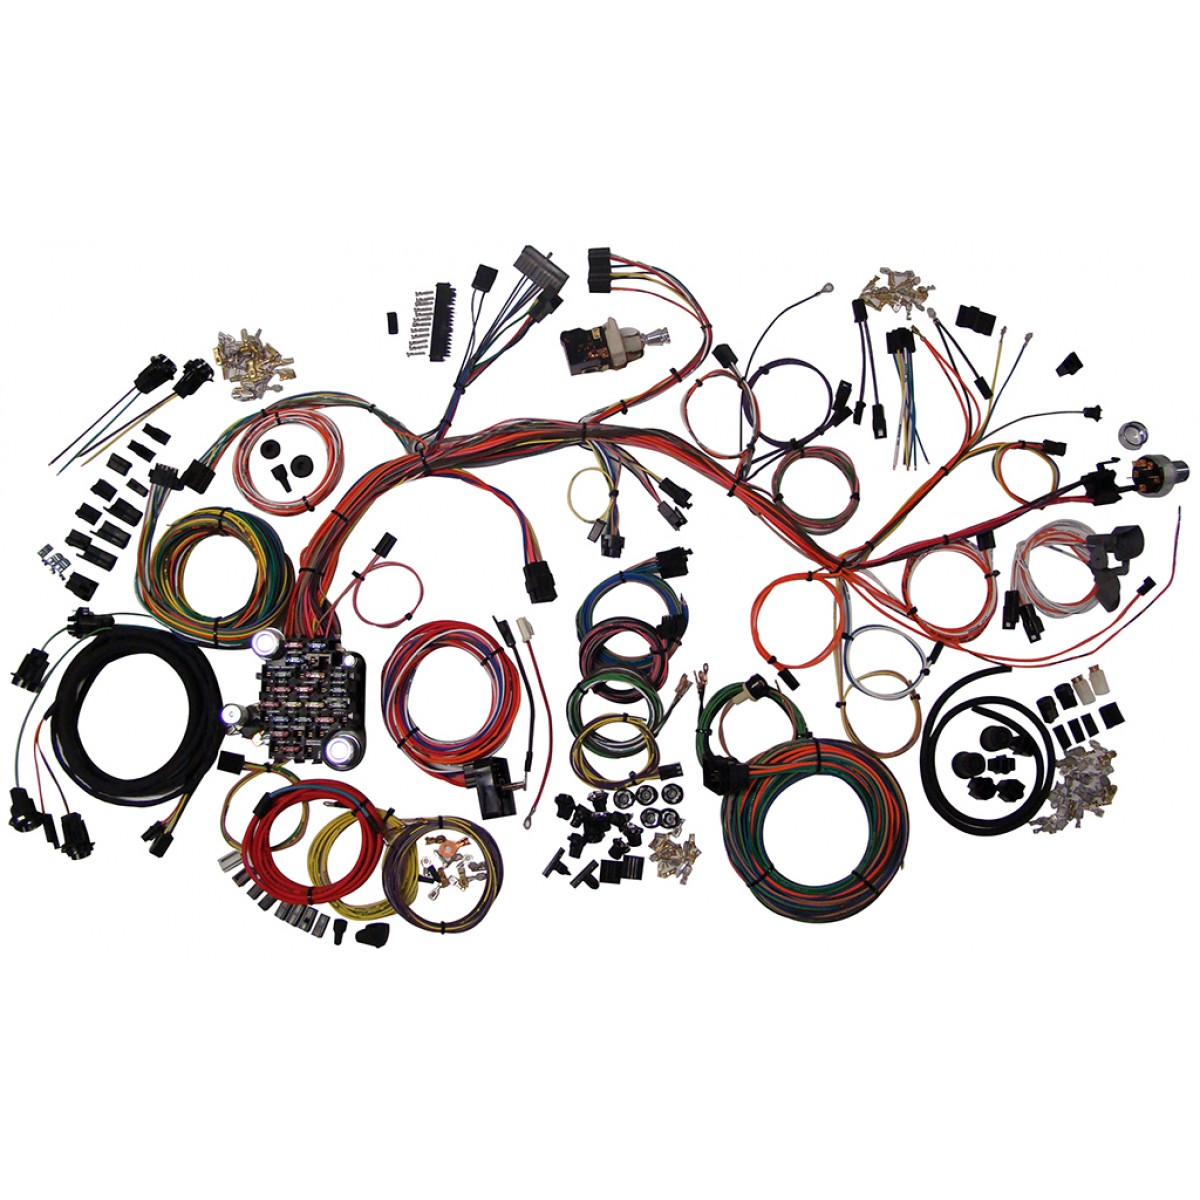 impala complete wiring harness kit 1961 1964 impala part 510063 61 64 impala full wire harness 1961 1964 impala wiring harness complete wiring harness kit full size jeep wiring harness at reclaimingppi.co